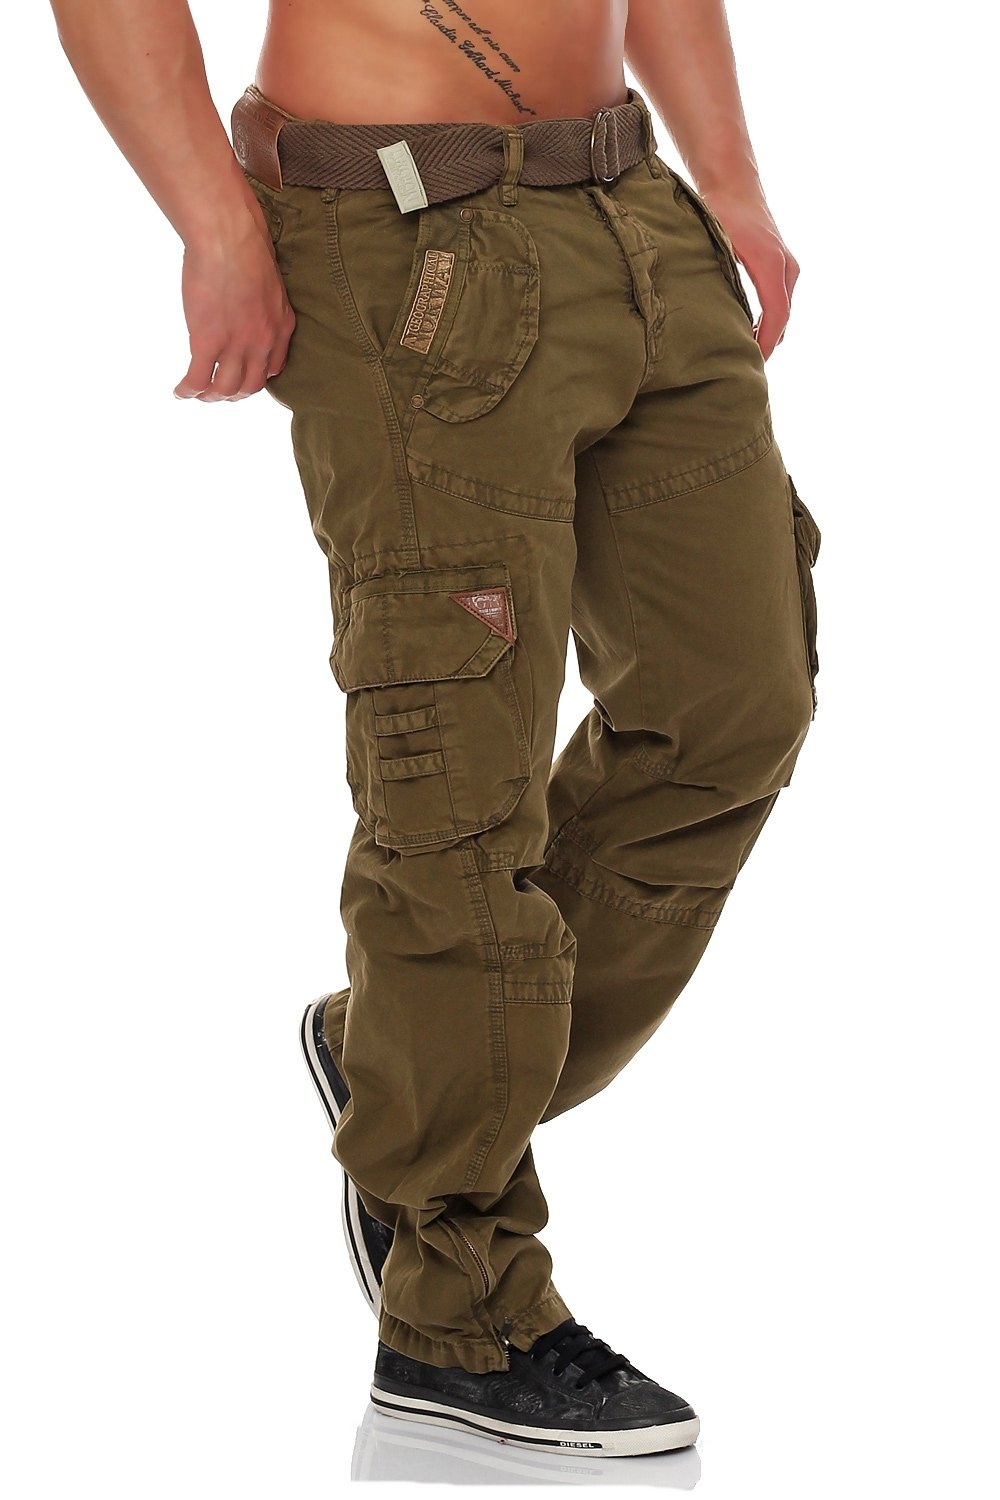 geographical norway herren hose cargo pant pirouette cargohose neu ebay. Black Bedroom Furniture Sets. Home Design Ideas